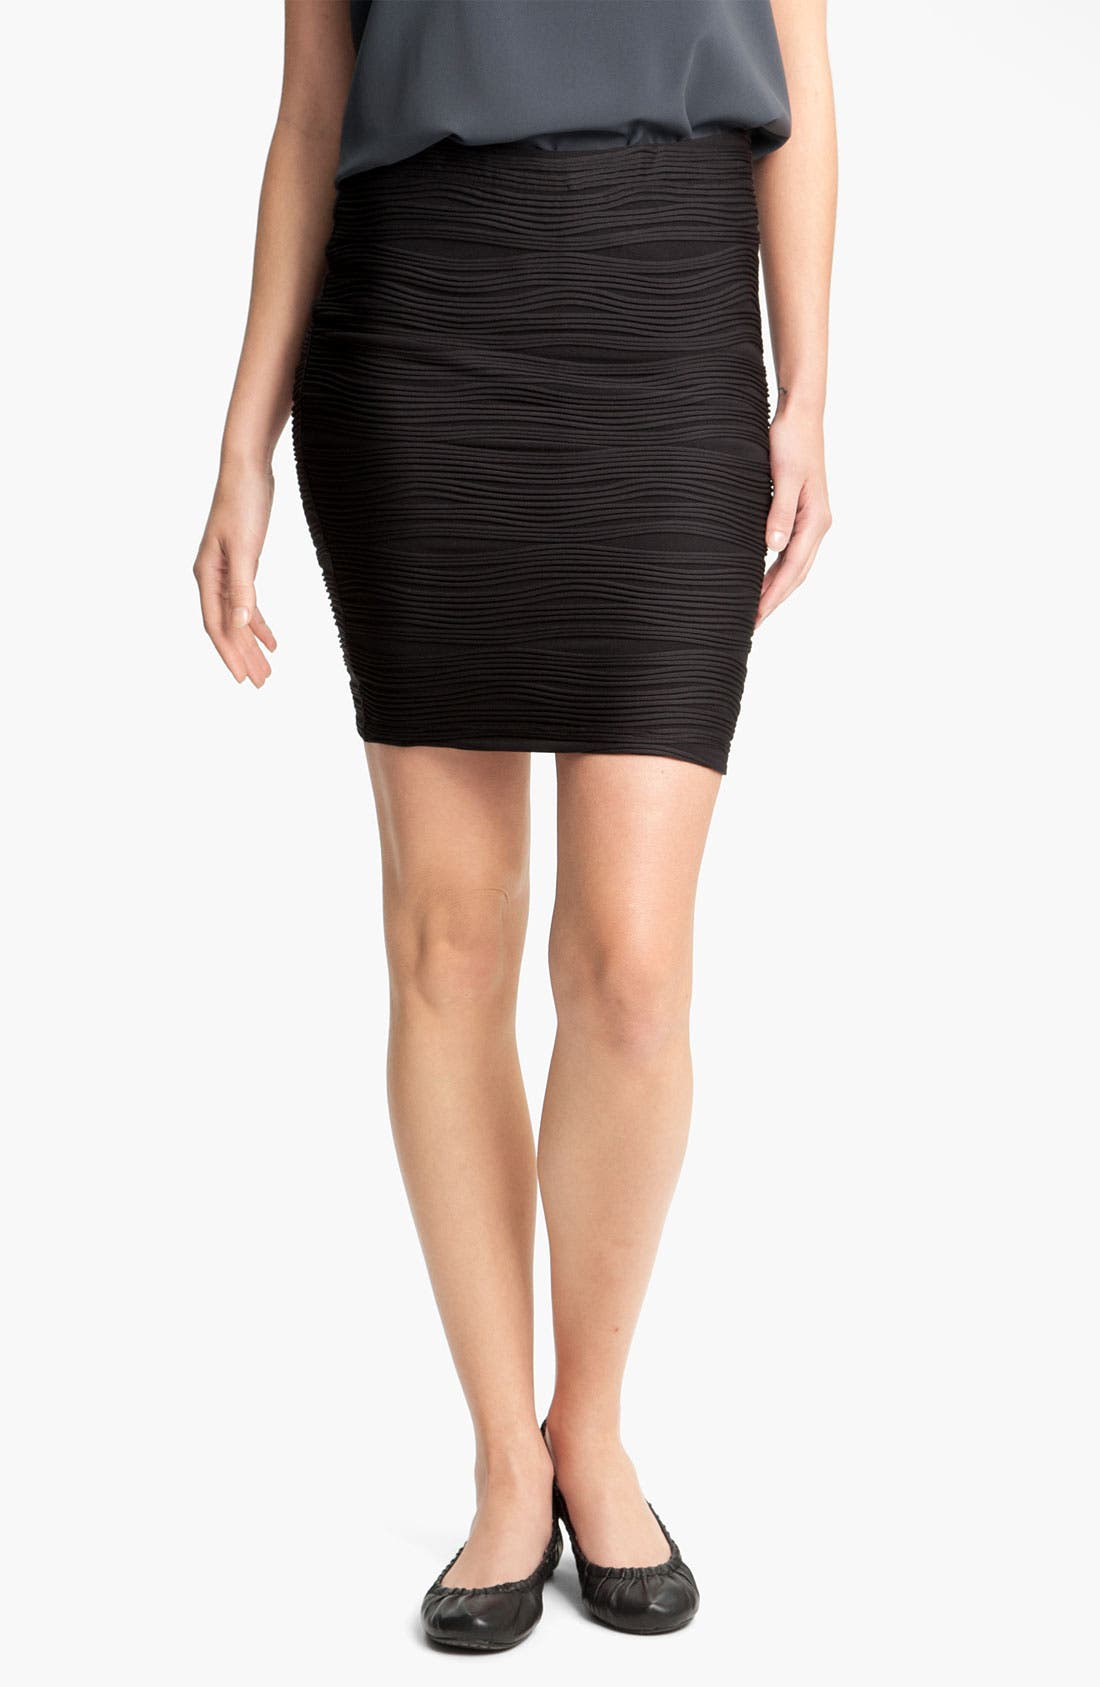 Alternate Image 1 Selected - Lily White Textured Bandage Skirt (Juniors)